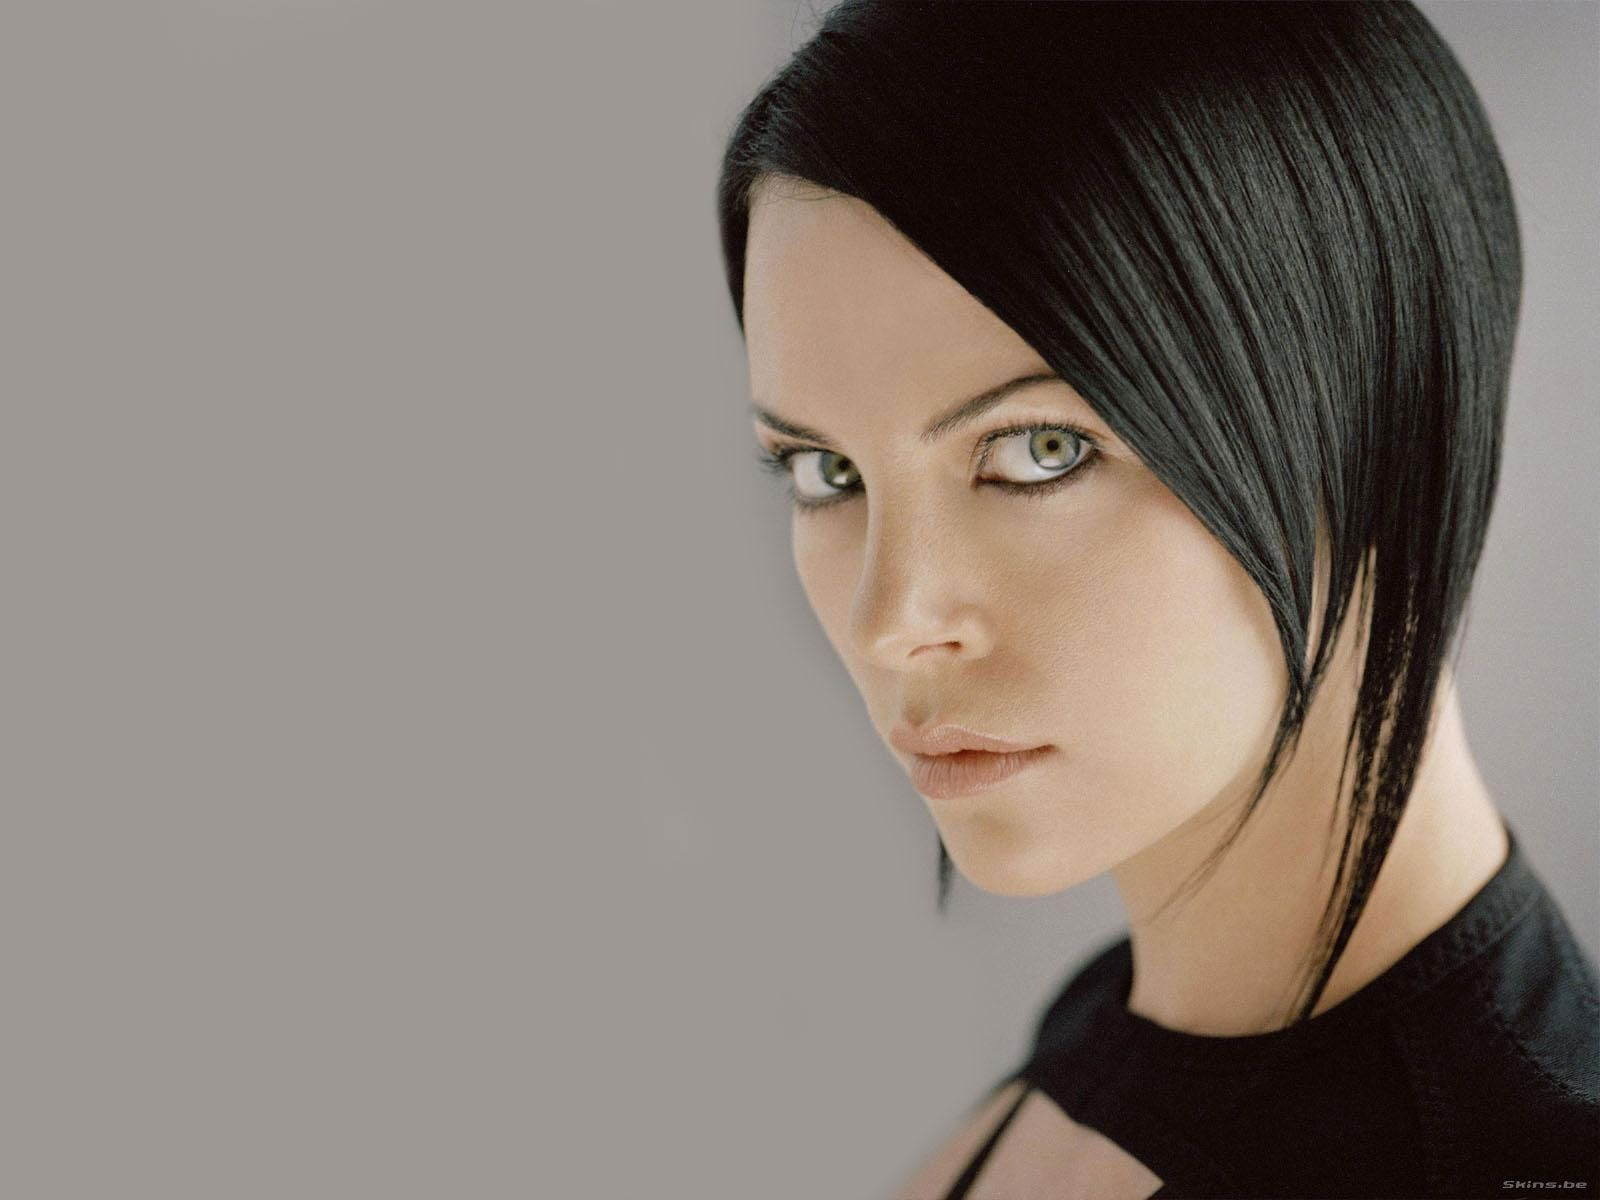 Aeon Flux Charlize Theron Movies Pinterest Aeon Flux And